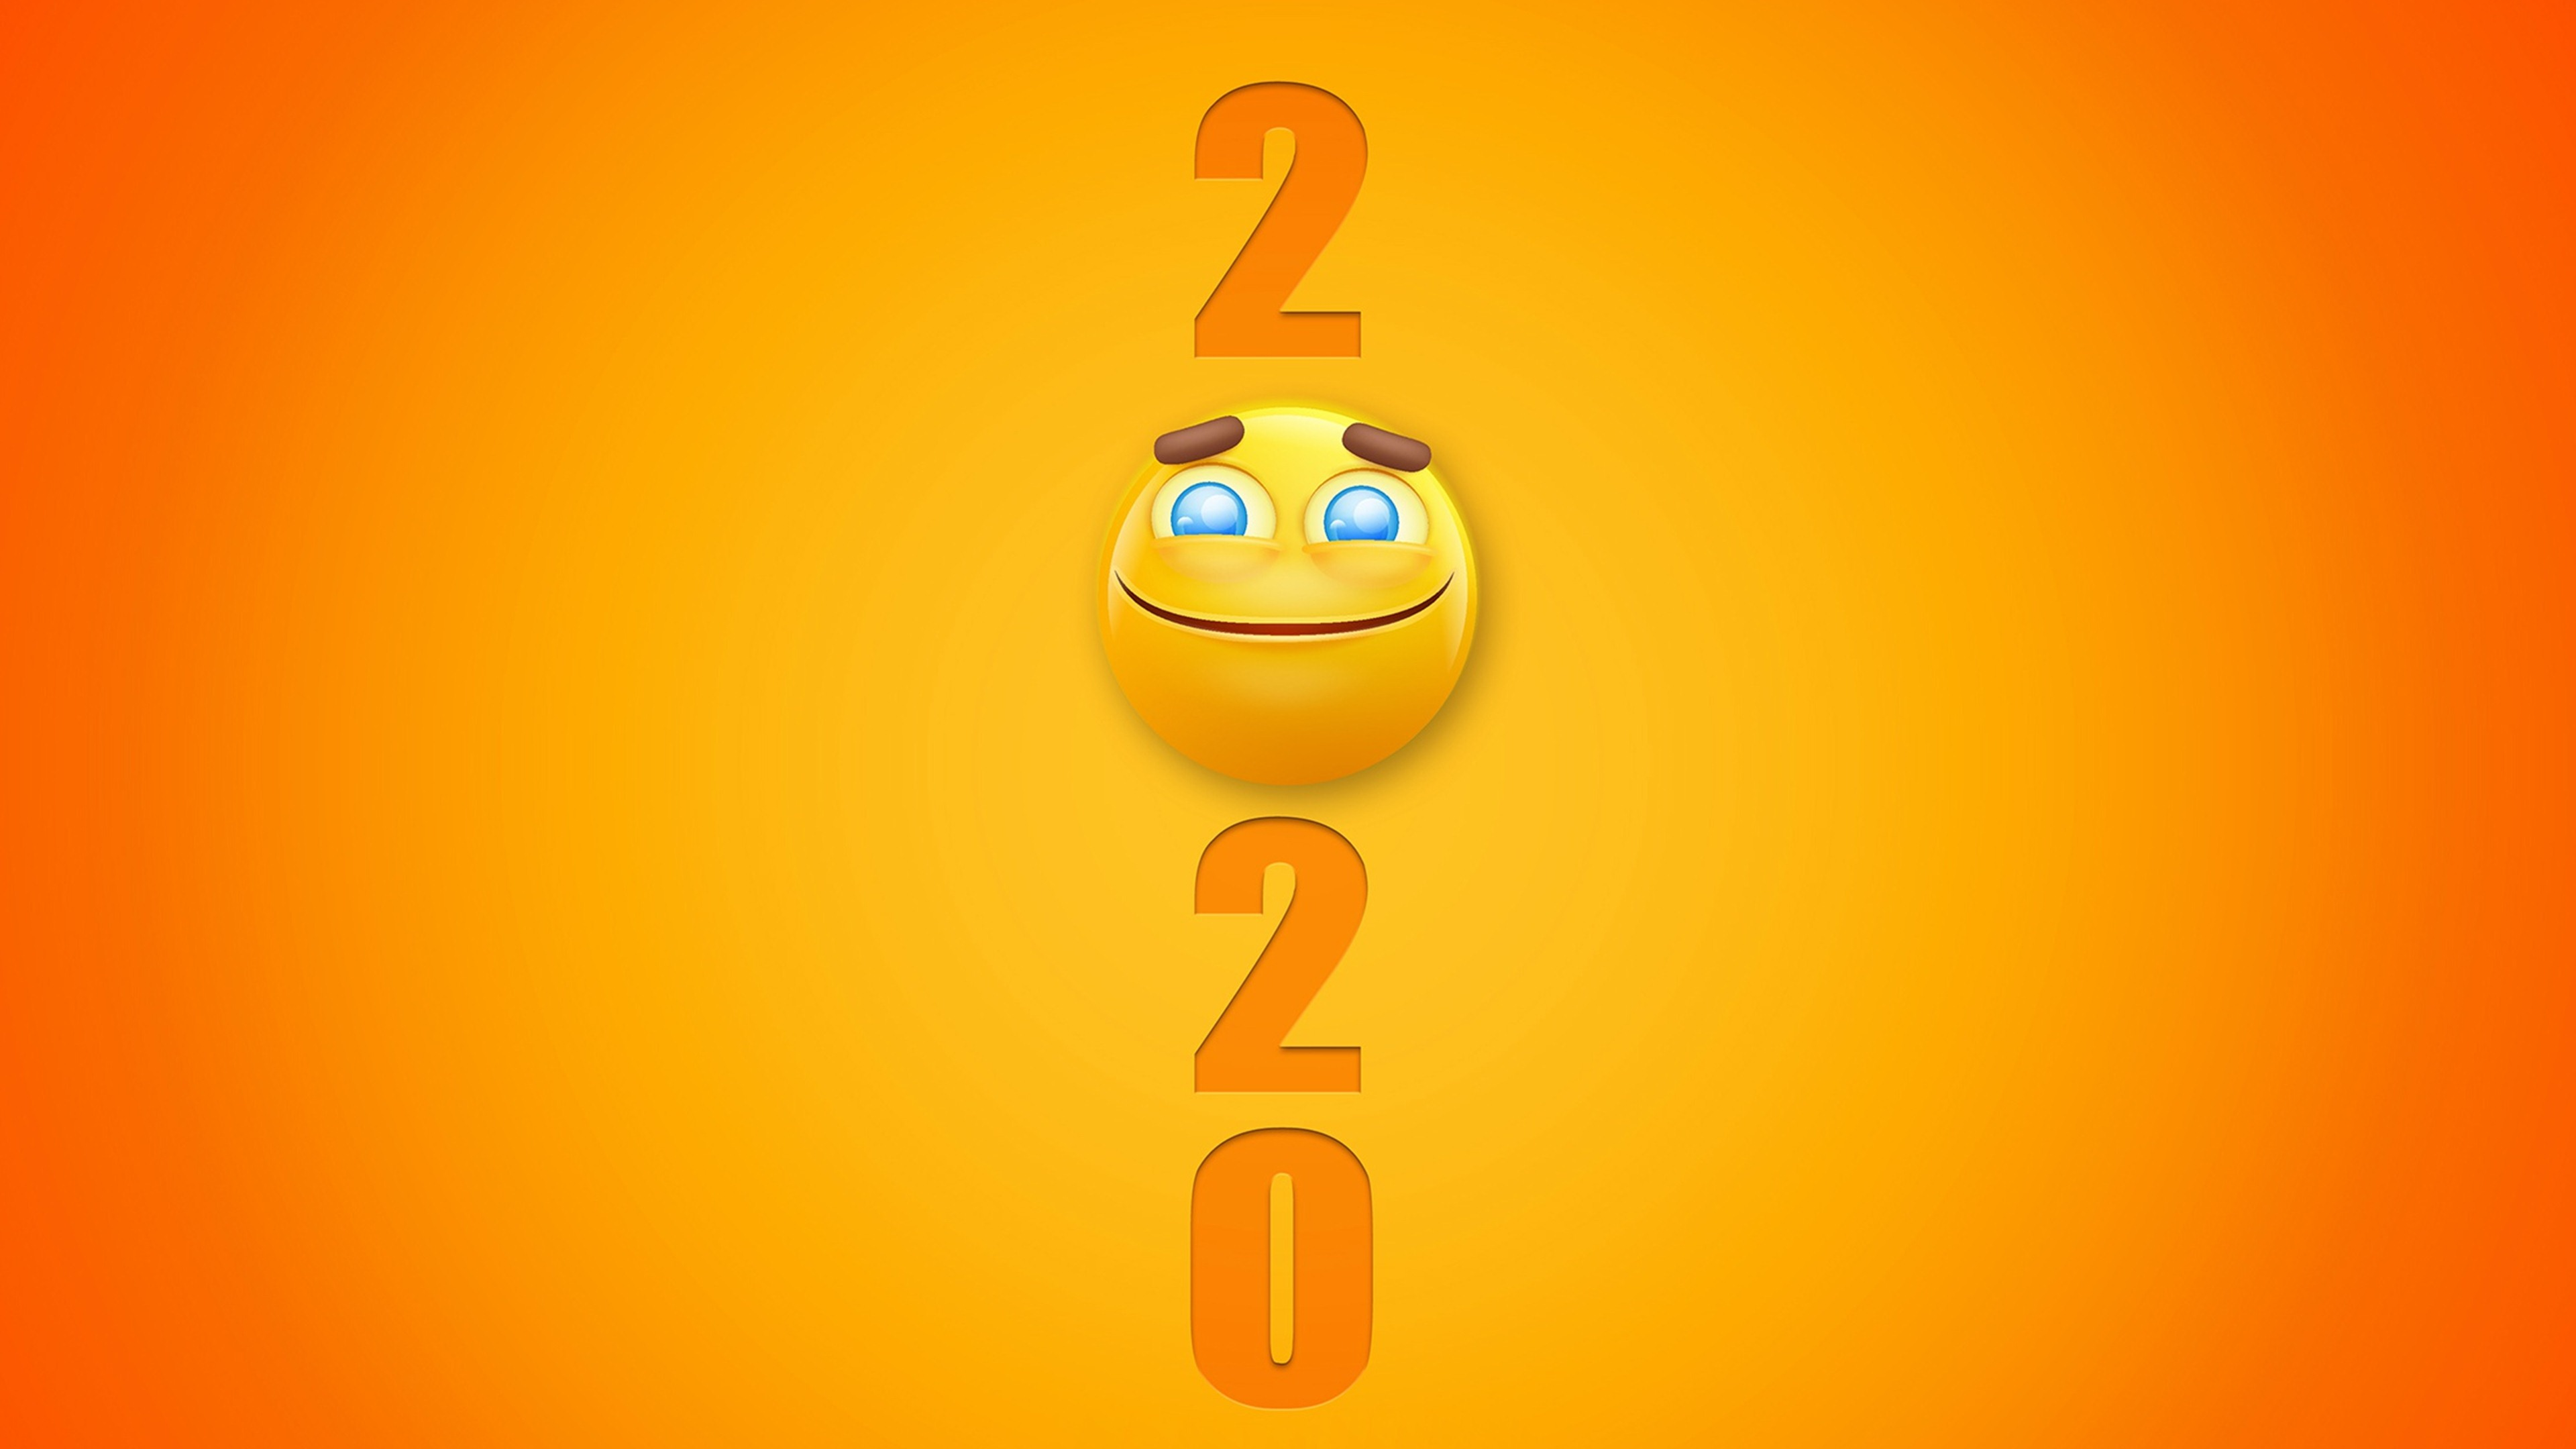 Happy New Year Smiley 2020 4K Wallpaper 6993   Baltana 3840x2160